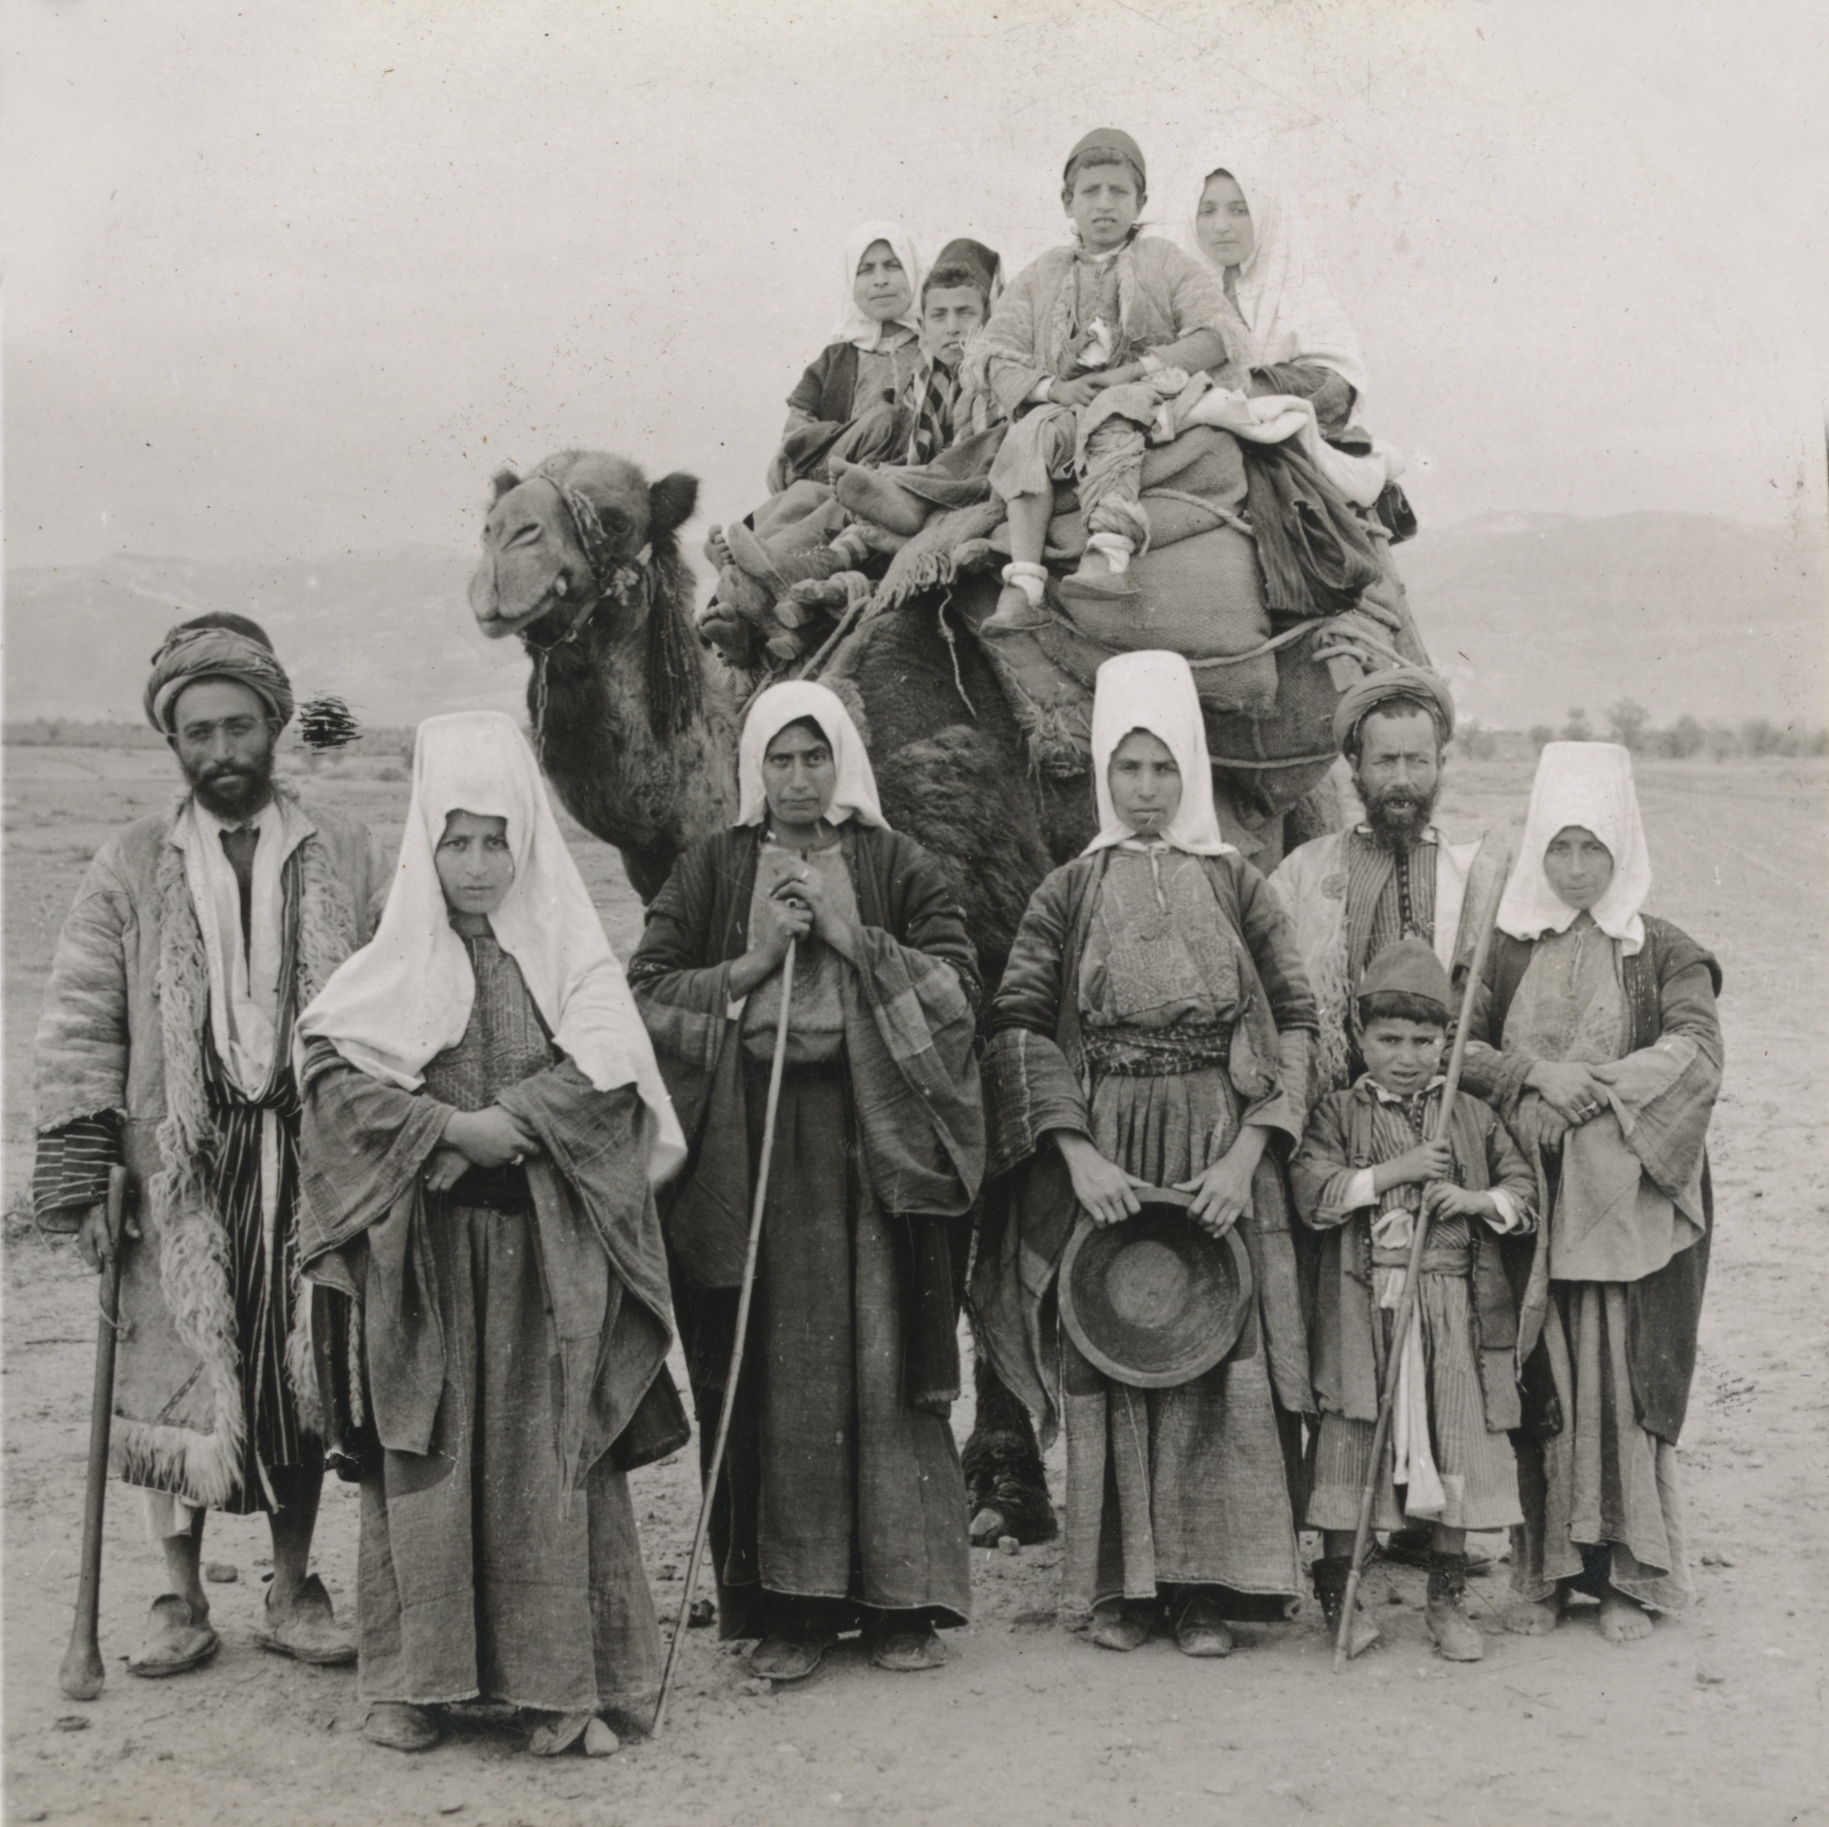 Bethlehem - بيت لحم : Women of Bethlehem 95 - (late 19th, early 20th c.) 1919 - Palestinians from Bethlehem on their way to Jerusalem